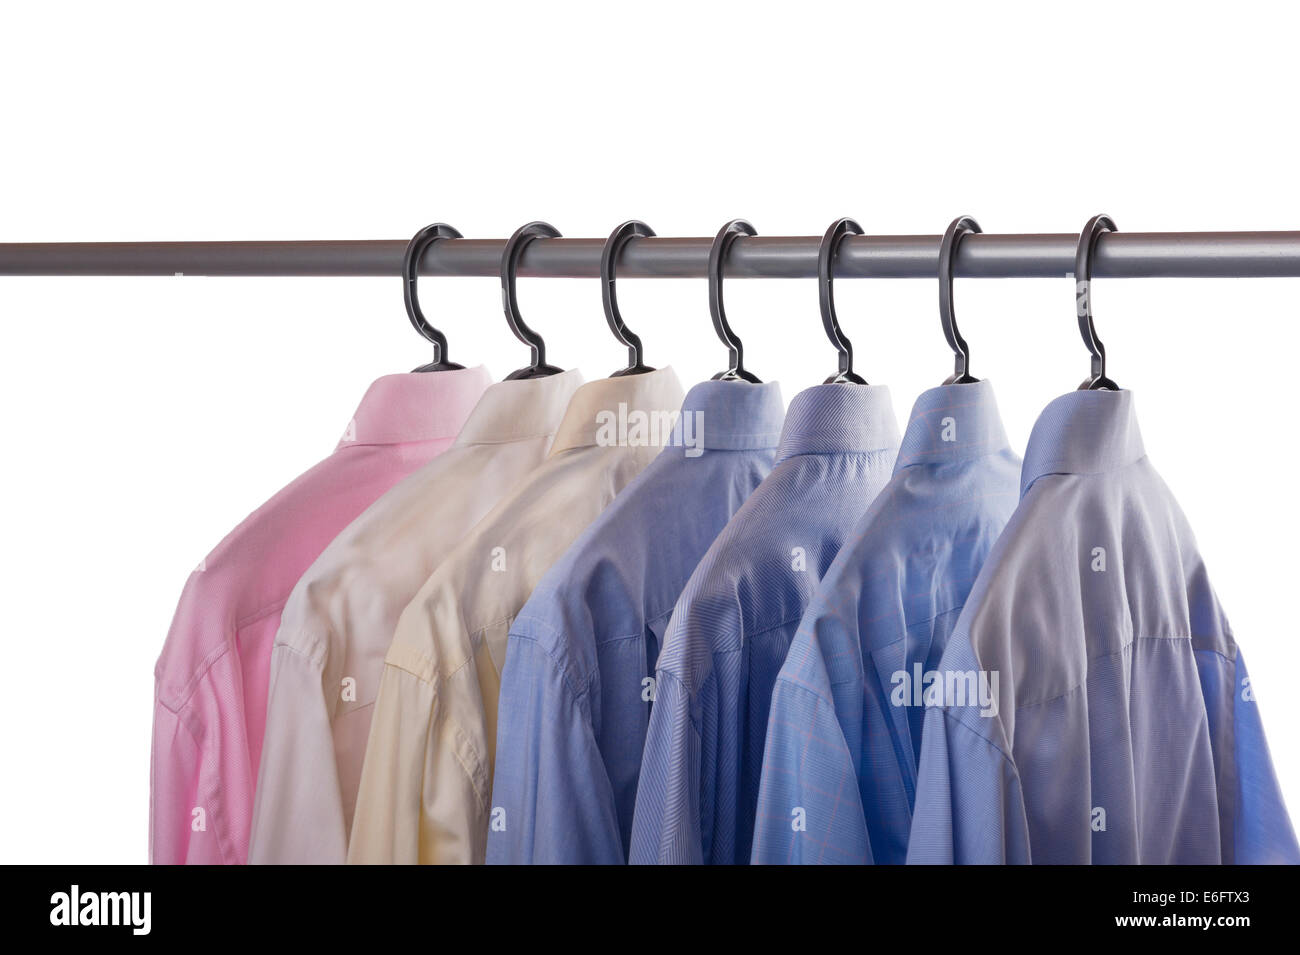 Seven mens shirts hanging on a clothing rail. - Stock Image